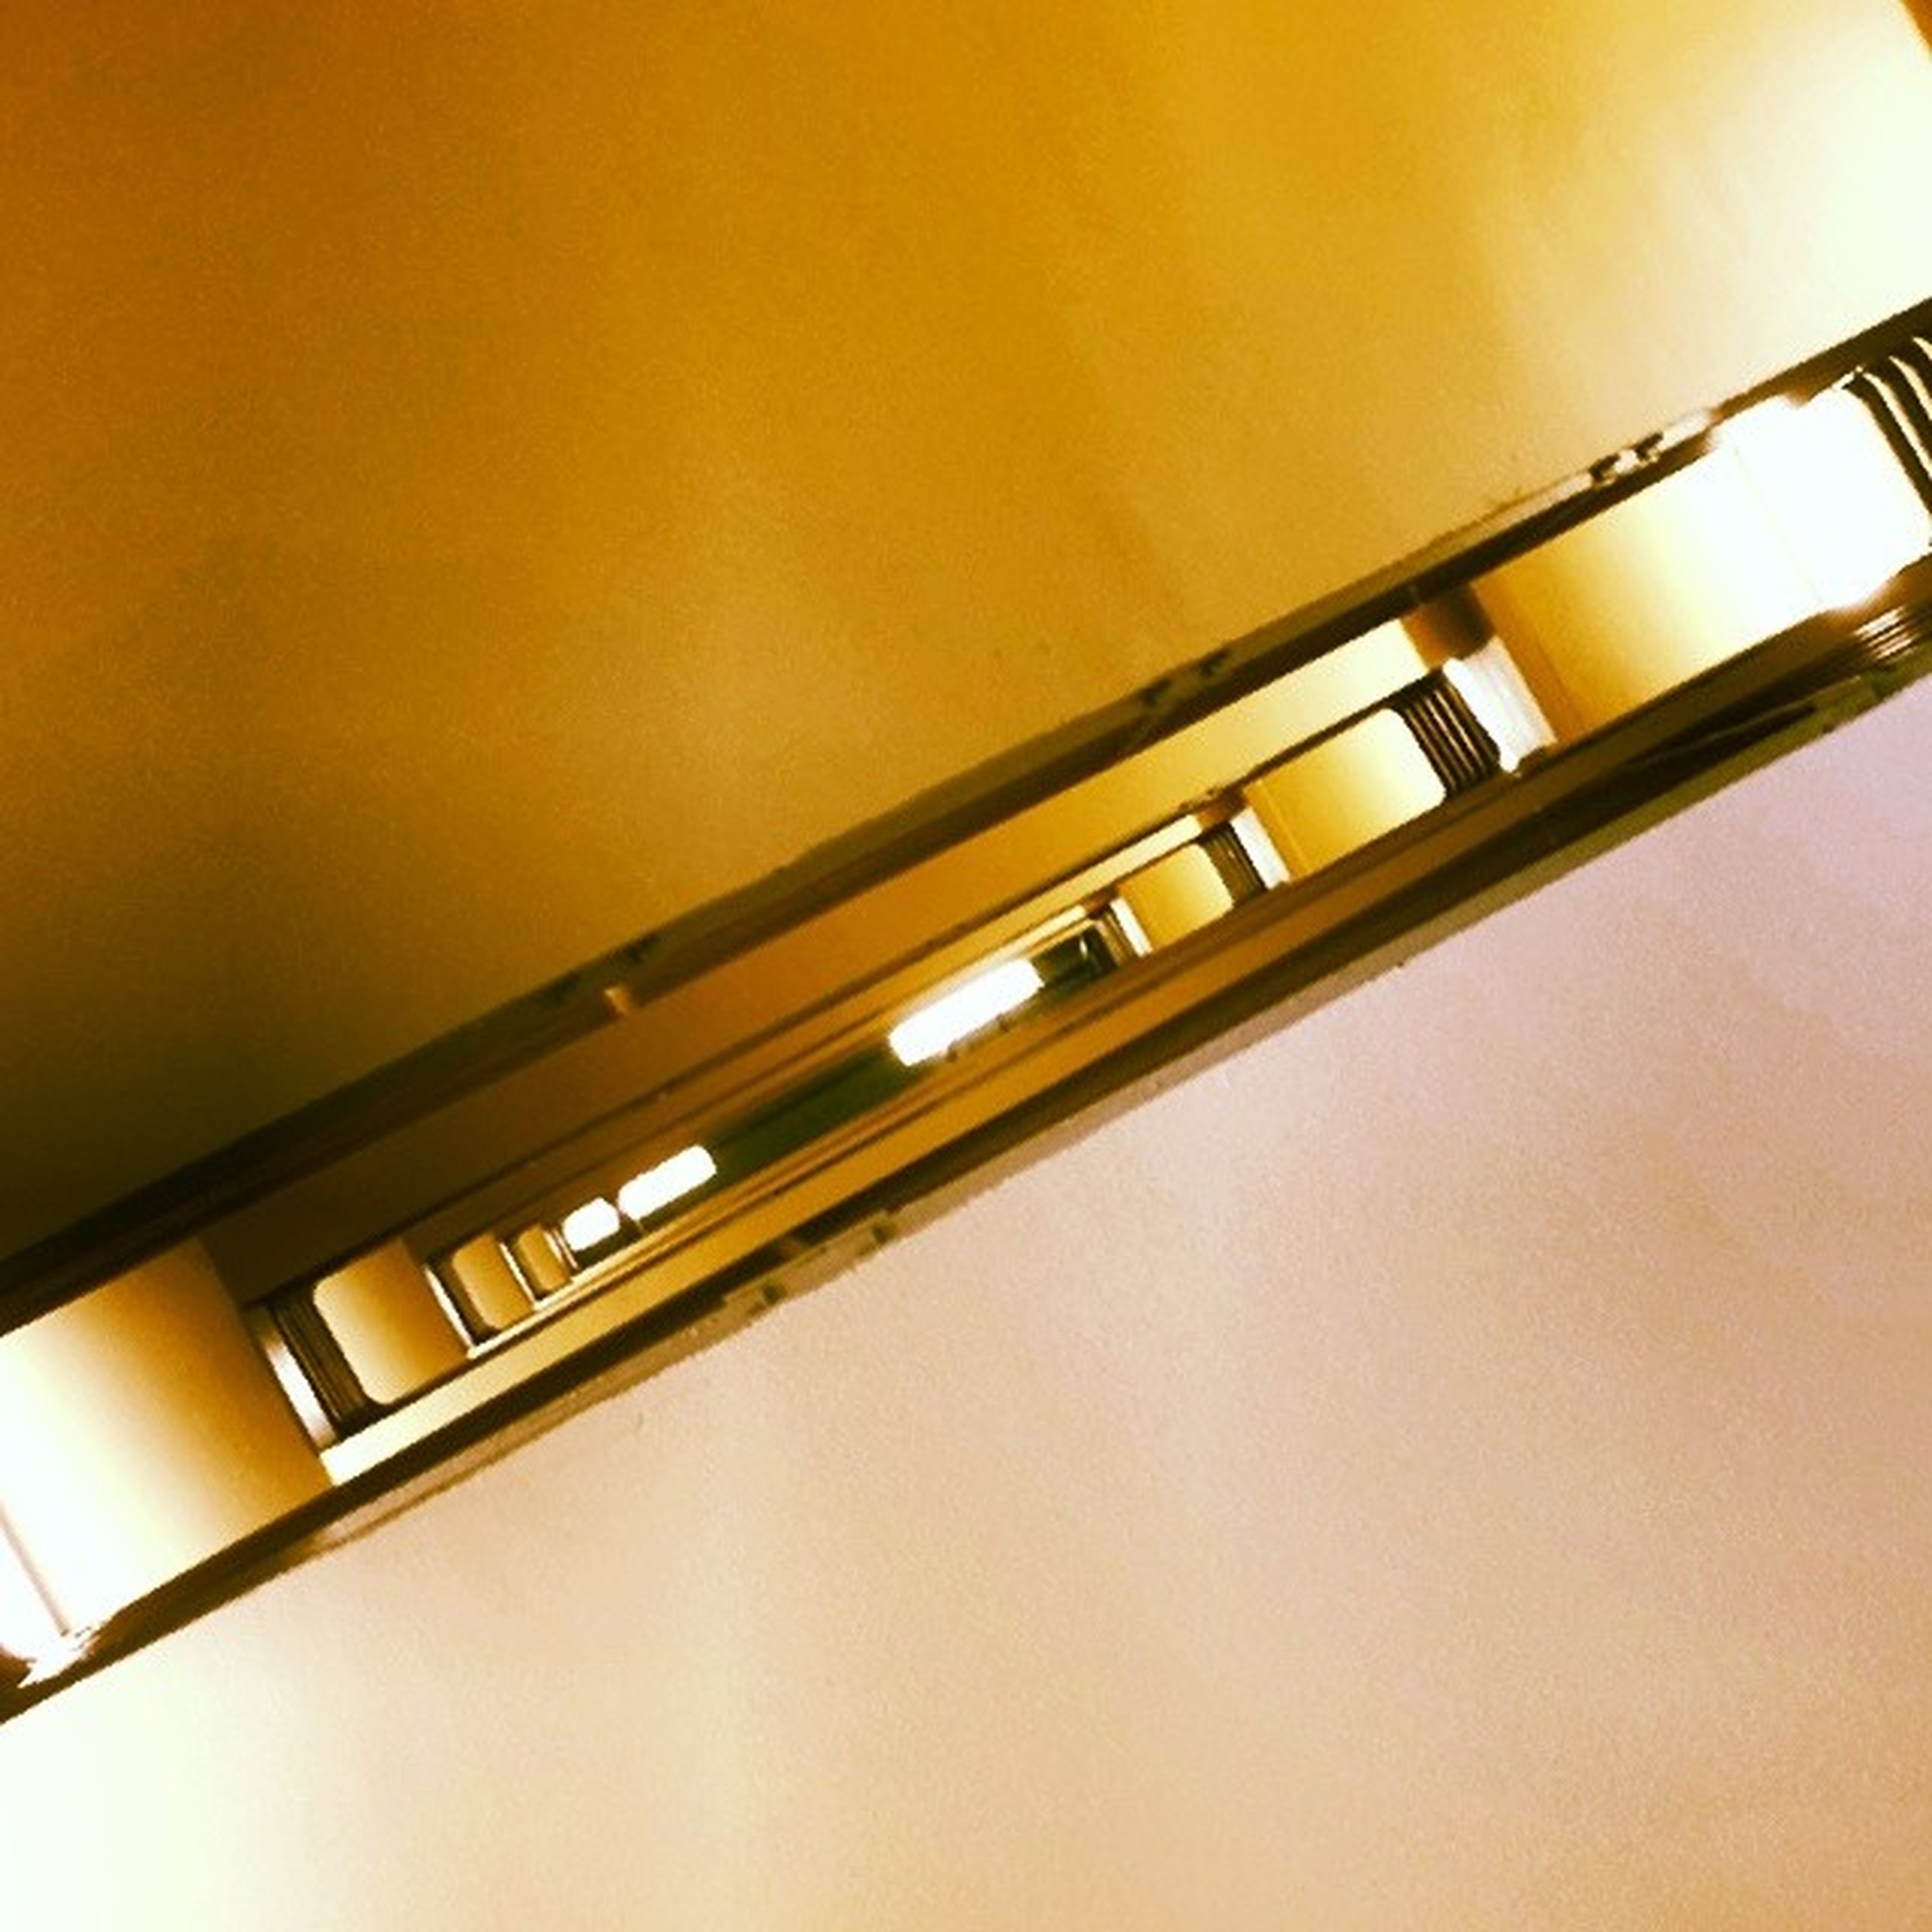 indoors, low angle view, copy space, wall - building feature, built structure, architecture, lighting equipment, yellow, no people, ceiling, wall, illuminated, metal, sunlight, home interior, orange color, railing, electricity, close-up, light - natural phenomenon